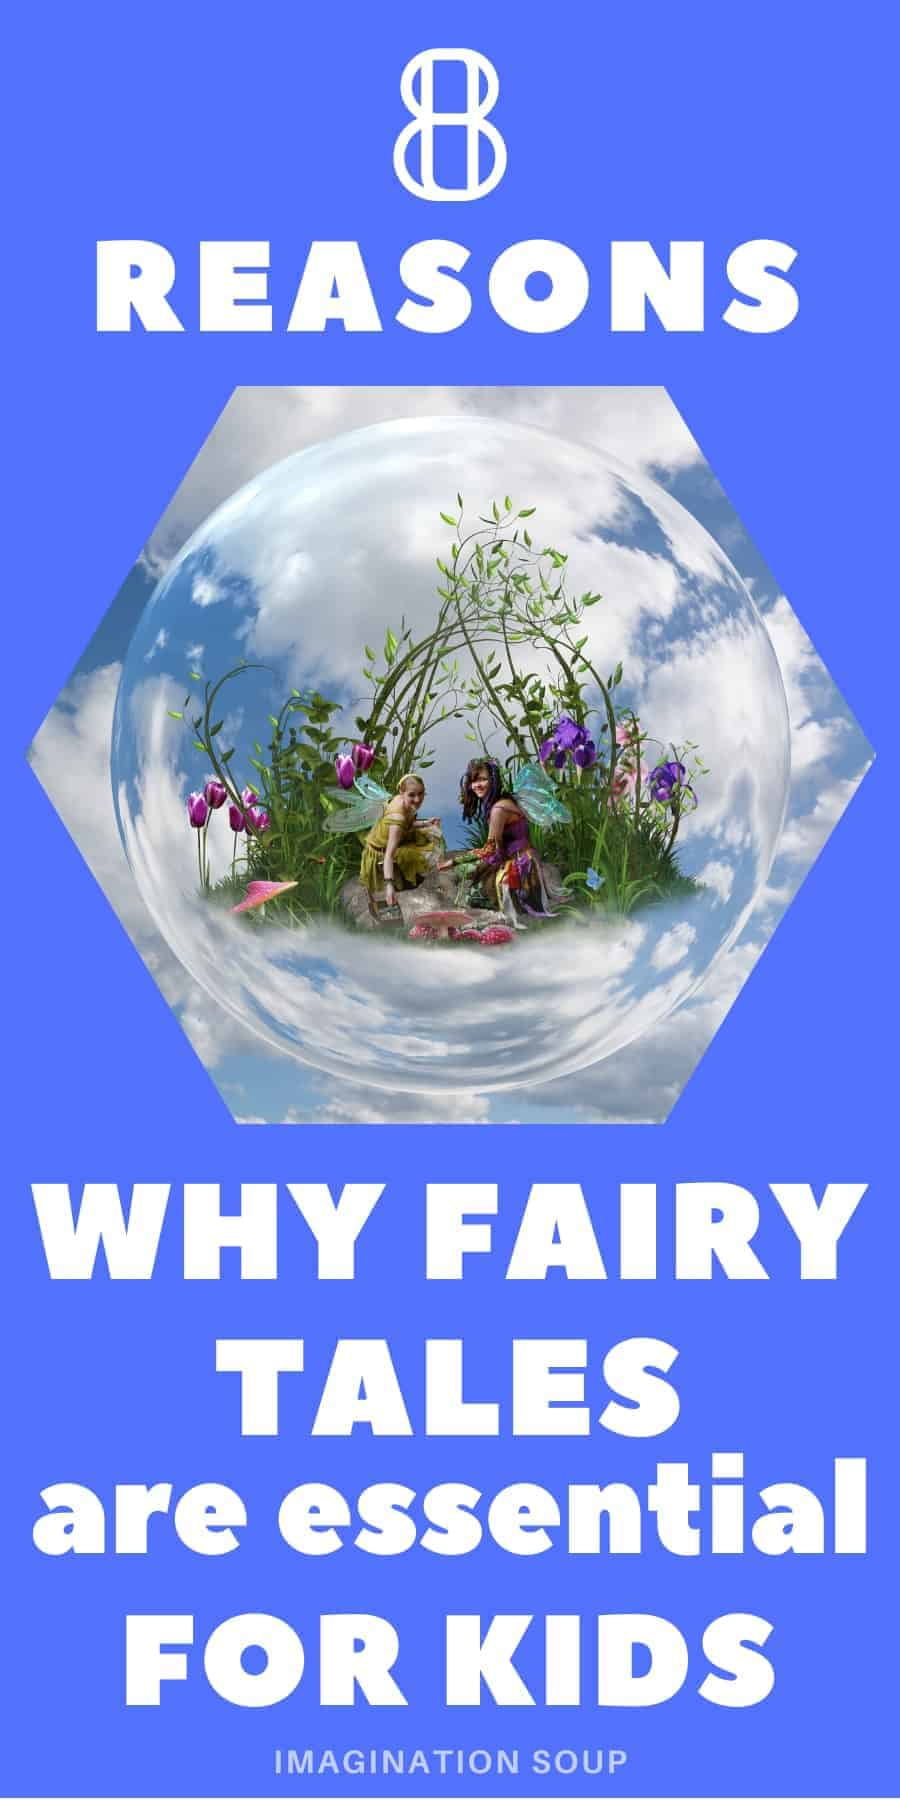 reasons why fairy tales are essential for kids